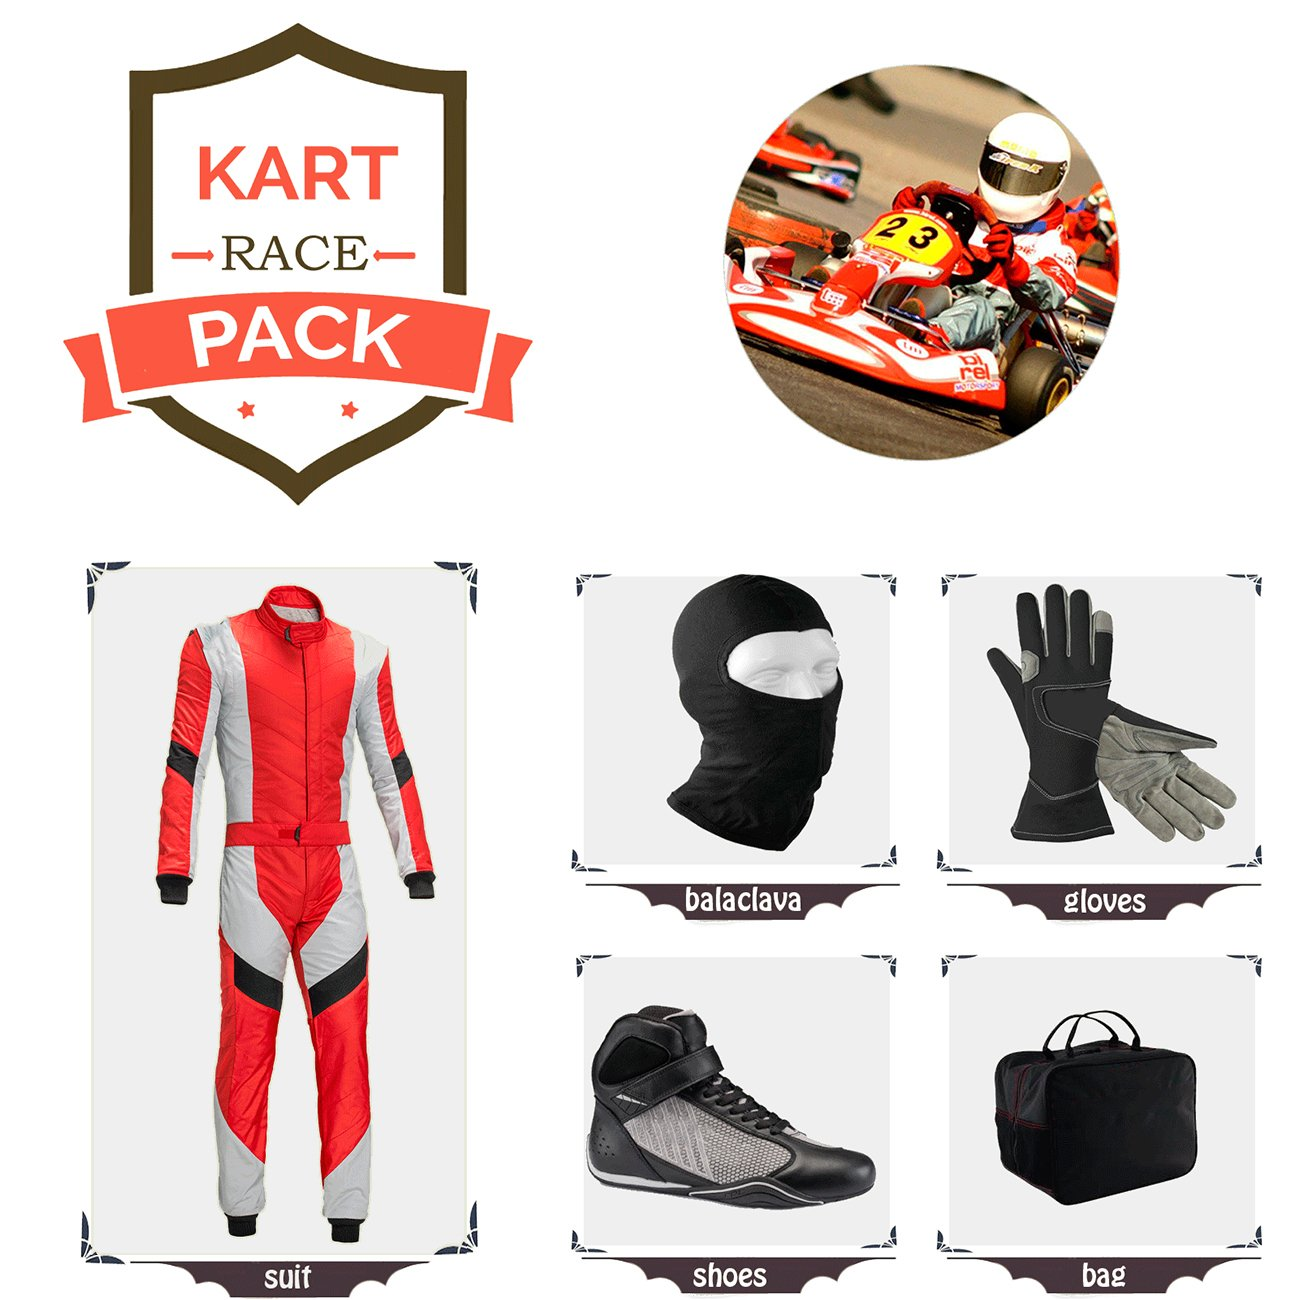 Red with White Black Style Sports Blue Go Kart Racing Suit Suit,Gloves,Balaclava and Shoes Free Bag